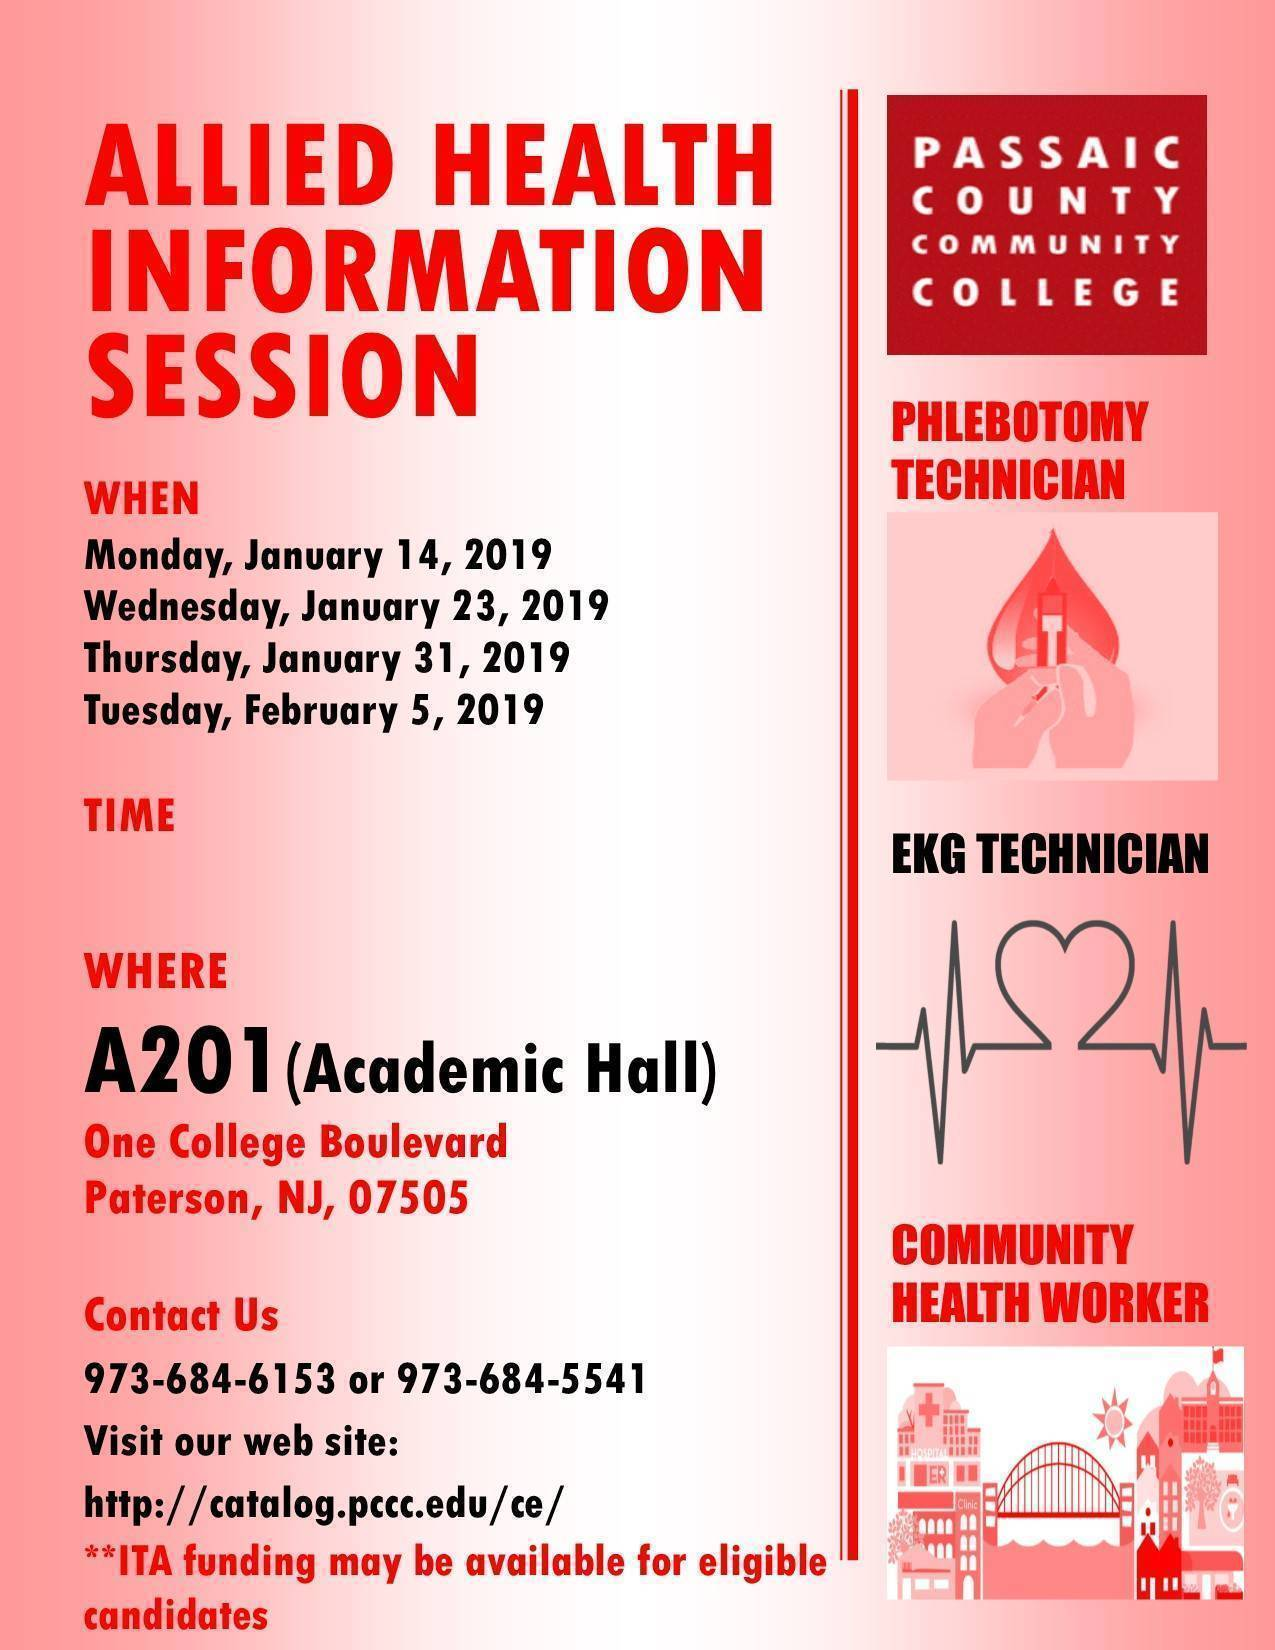 Allied Health Information Session